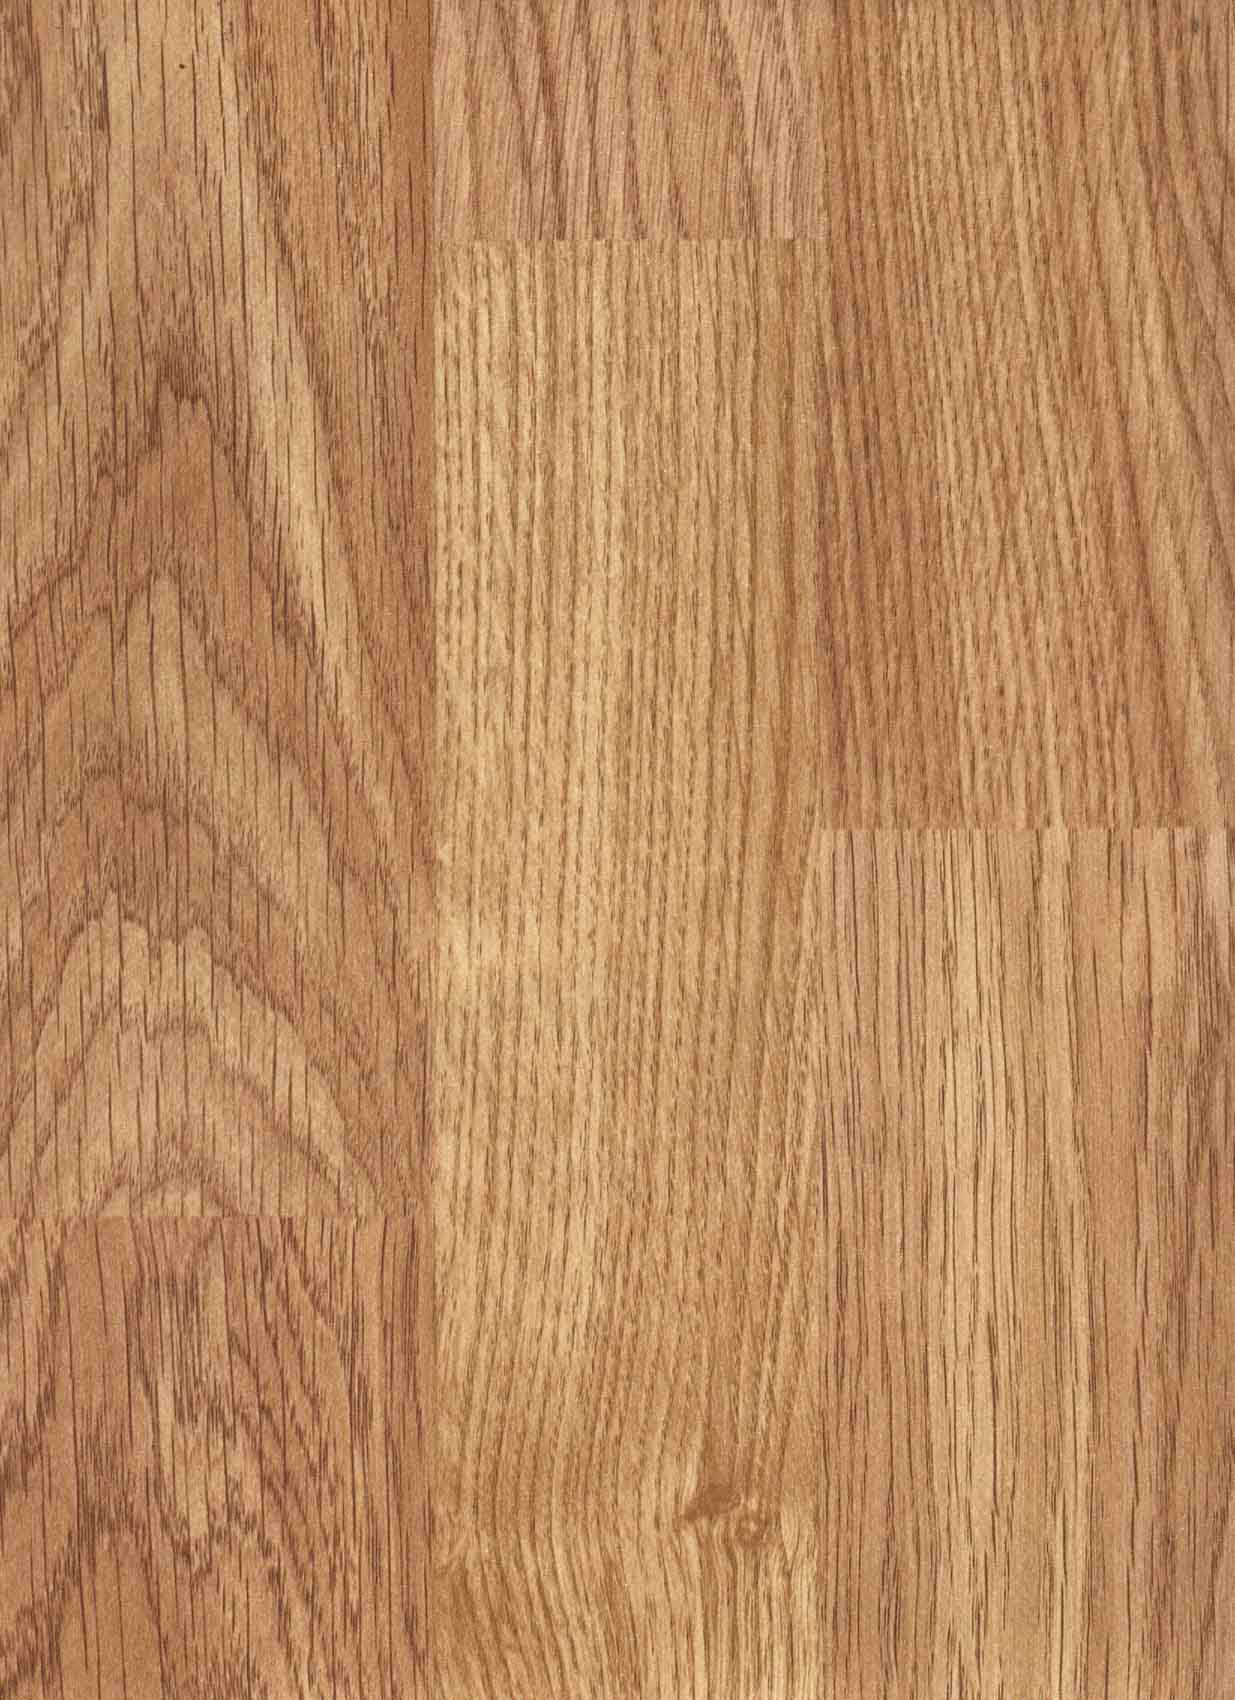 Laminate flooring laminate flooring laminated floor for Floating laminate floor